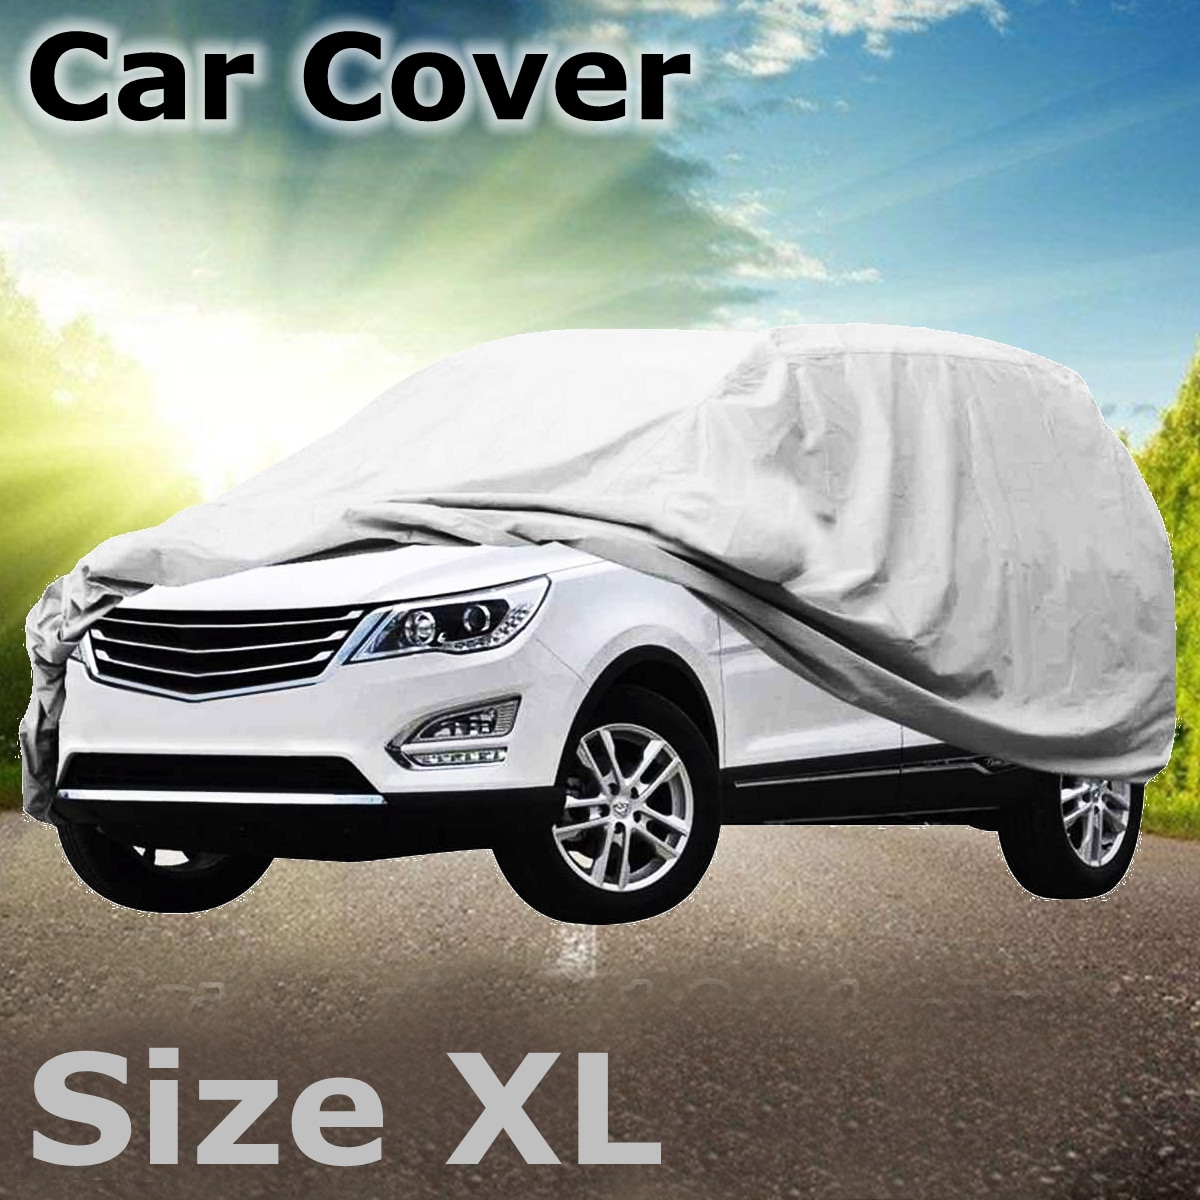 Universal XL 5.2x2x1.8m Car Cover Waterproof Anti-scratch Protector for 4x4 Sport Vehicle SUV